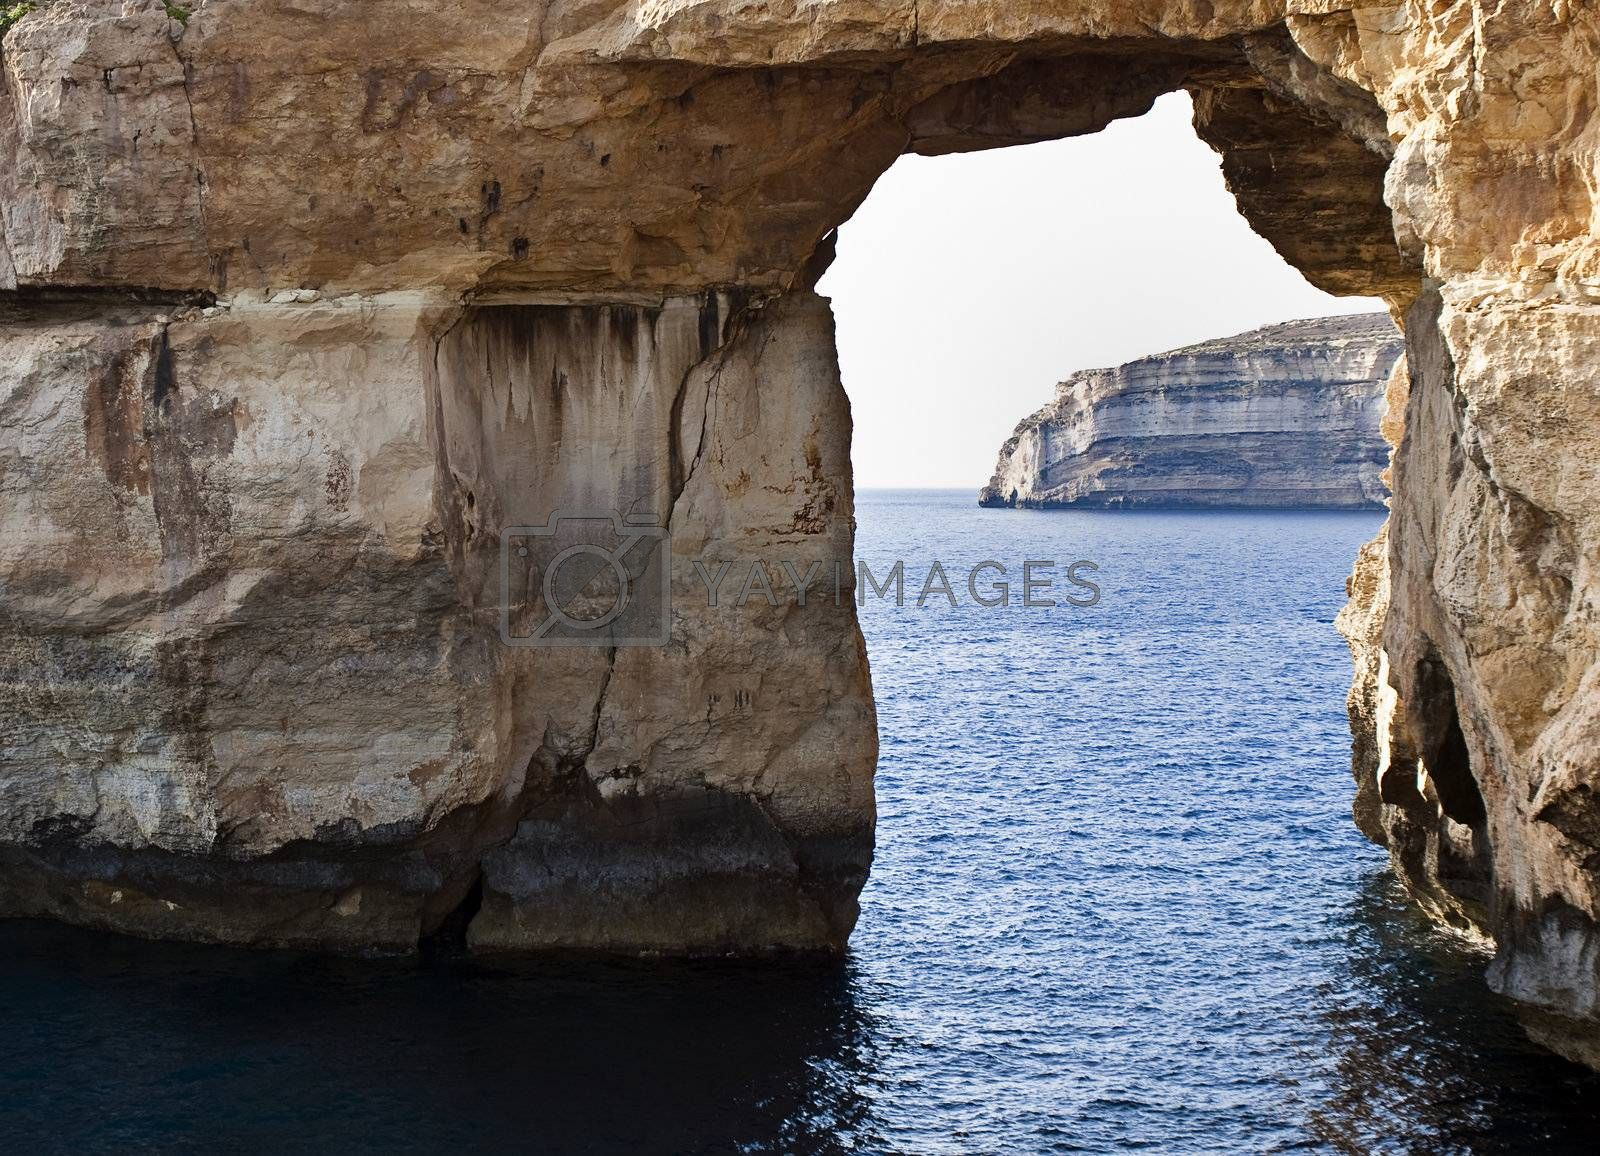 Royalty free image of The Azure Window by PhotoWorks